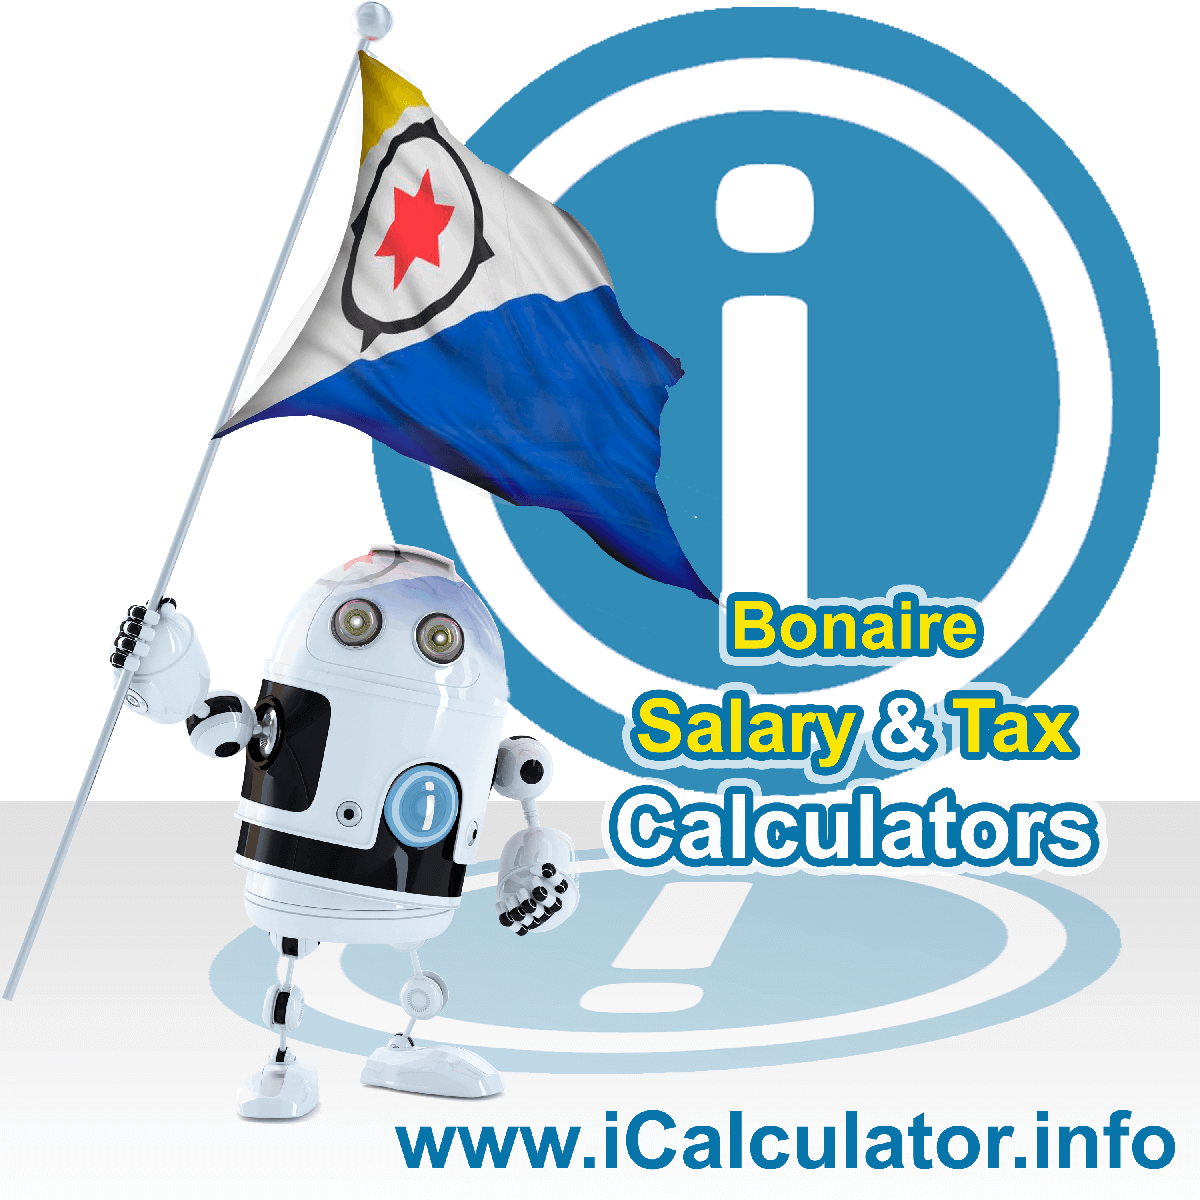 Bonaire Wage Calculator. This image shows the Bonaire flag and information relating to the tax formula for the Bonaire Tax Calculator